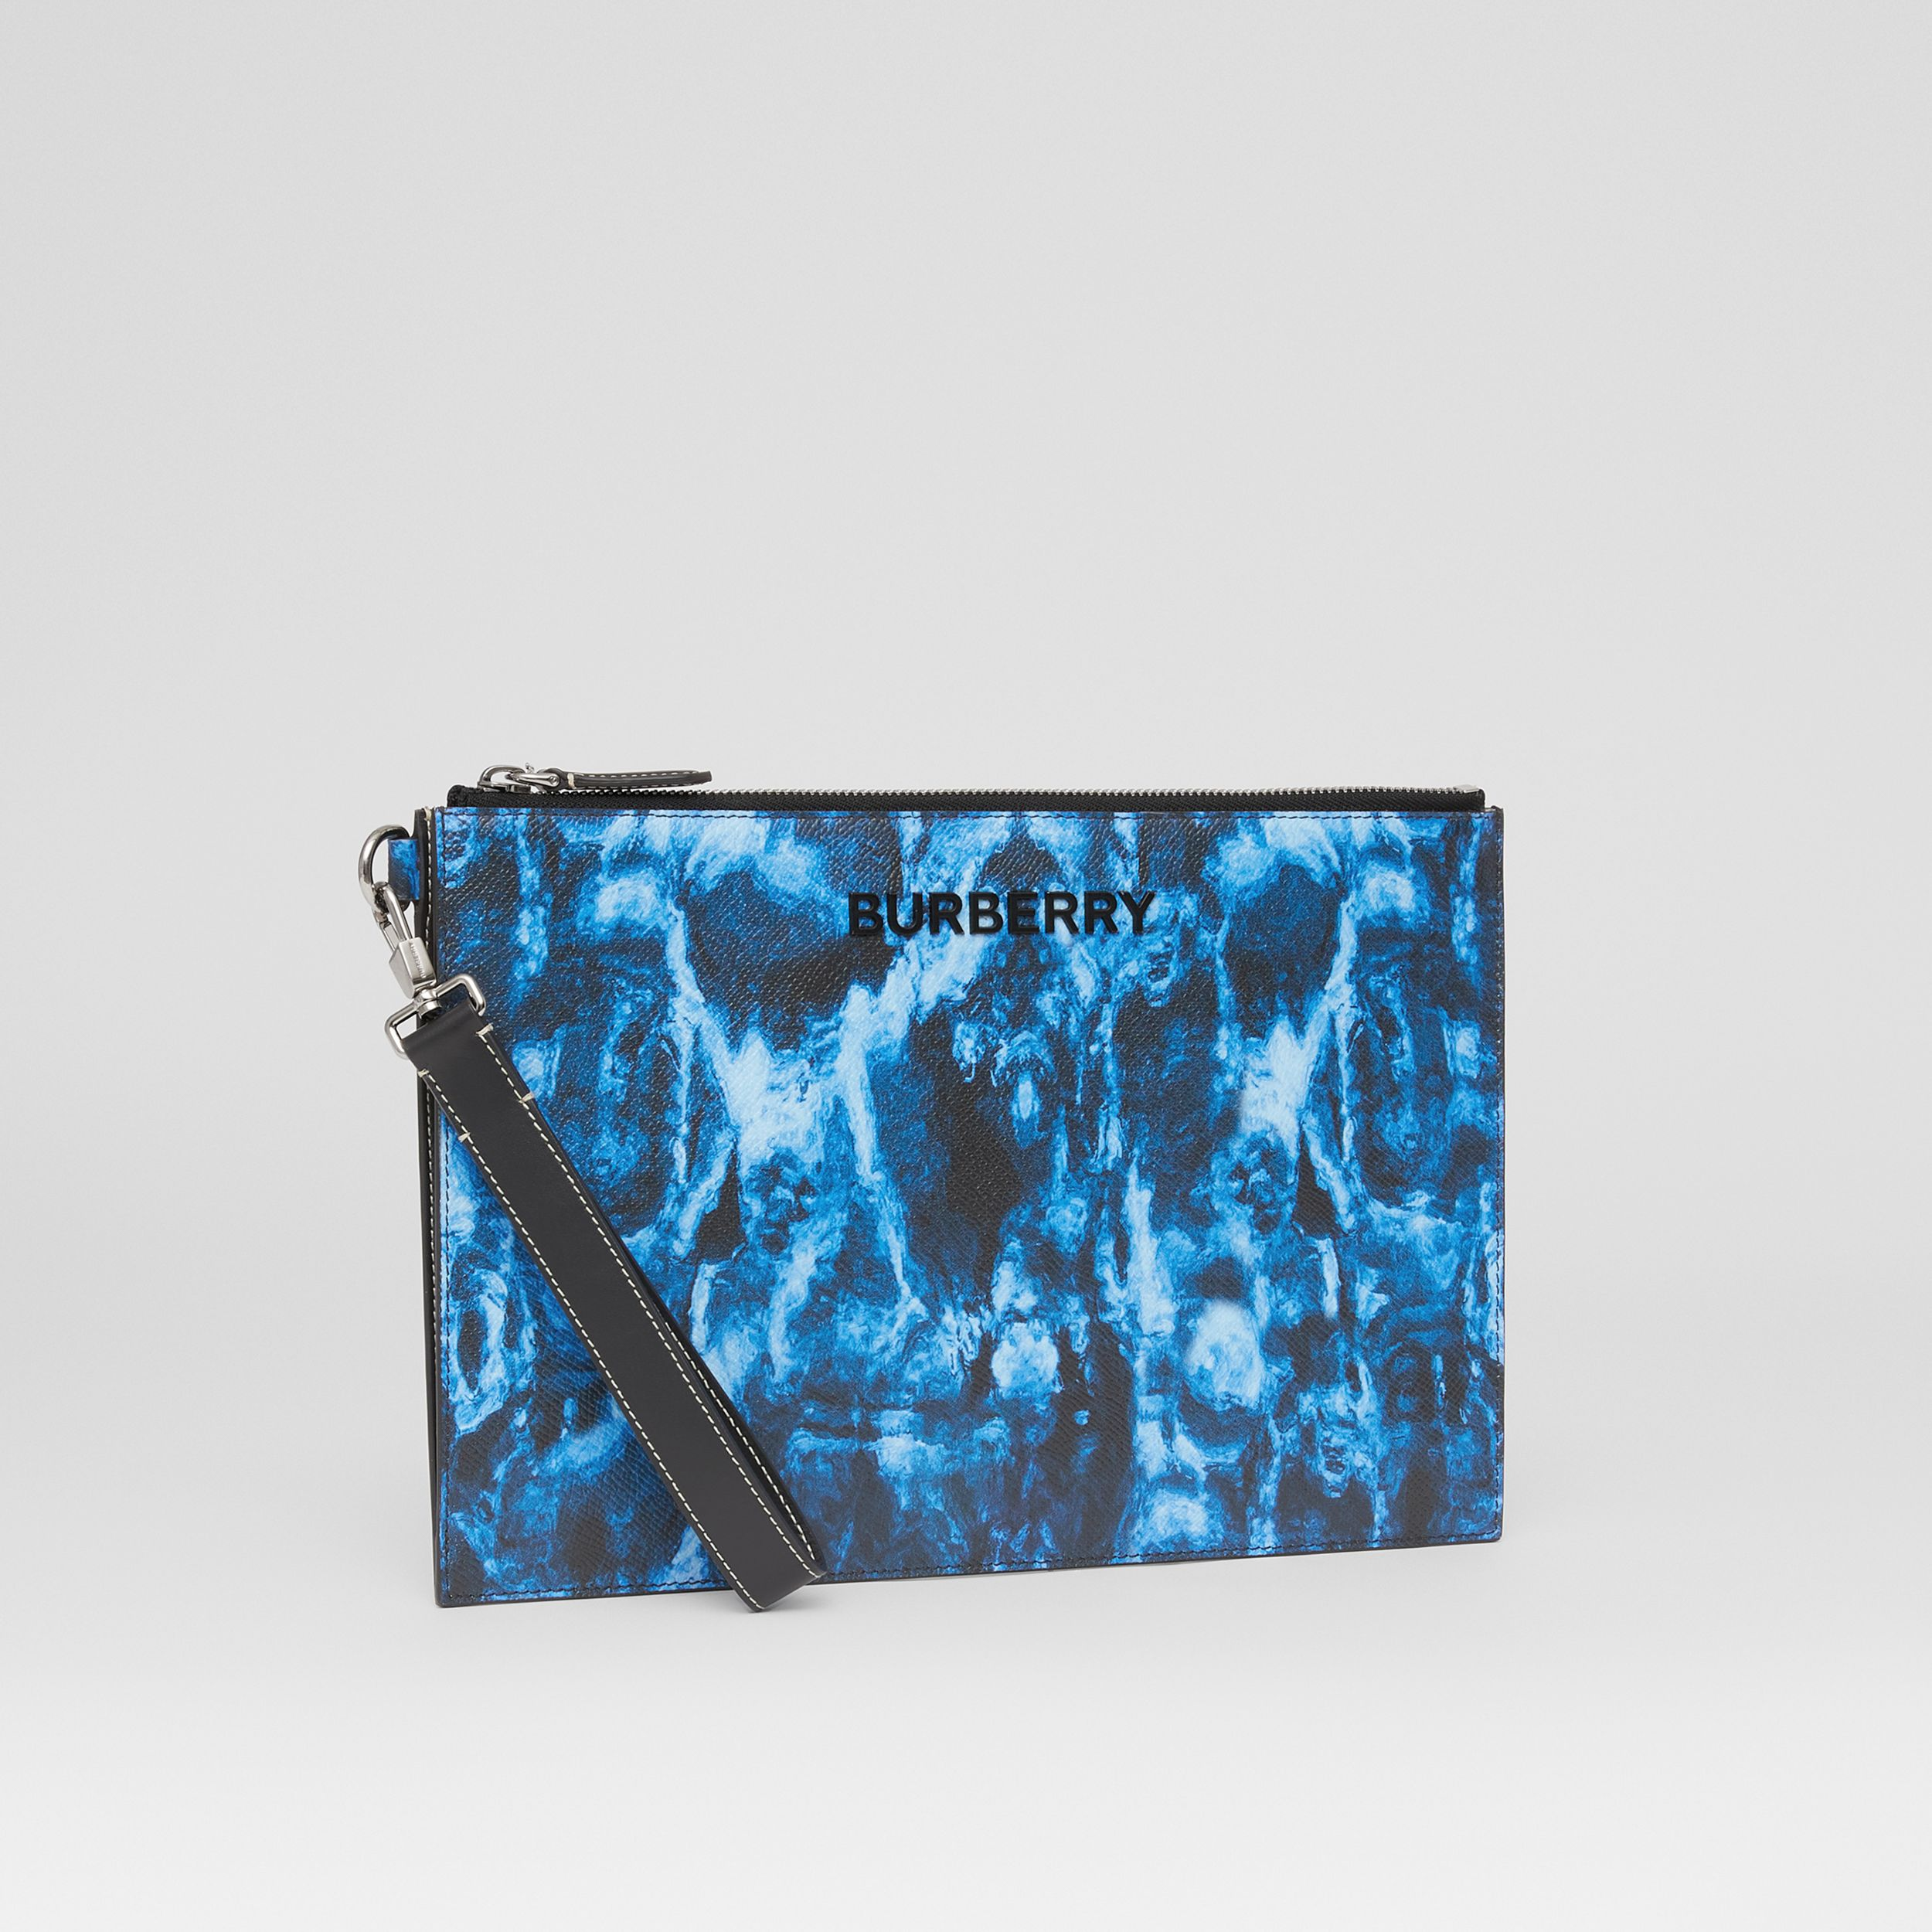 Ripple Print Leather Zip Pouch in Midnight Navy | Burberry United Kingdom - 4